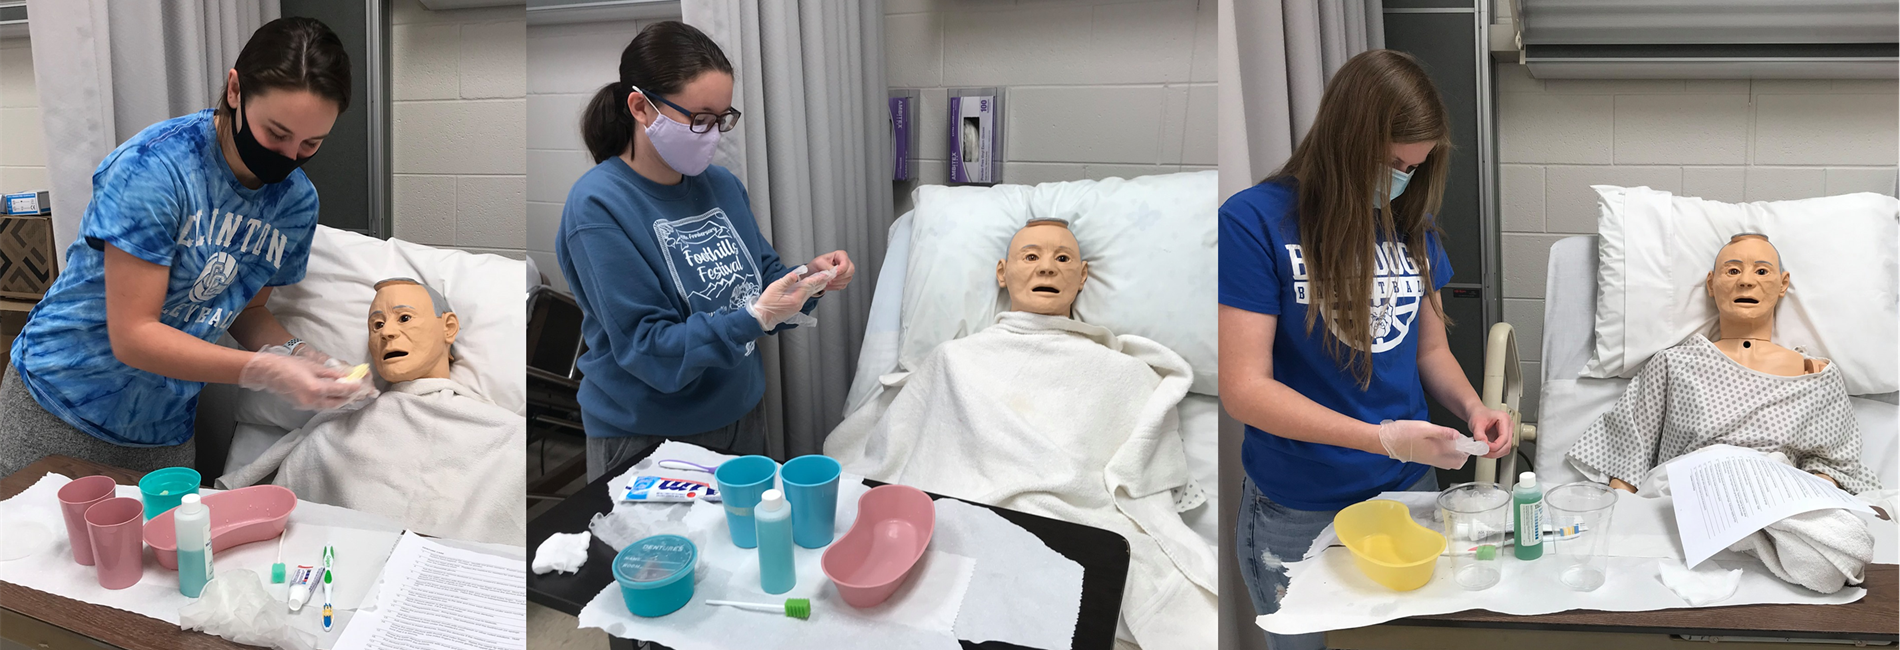 SoKY ECCA Health Science students are taking advantage of small group instruction to earn dual credit lab hours and to prepare for Industry Certification credentials.